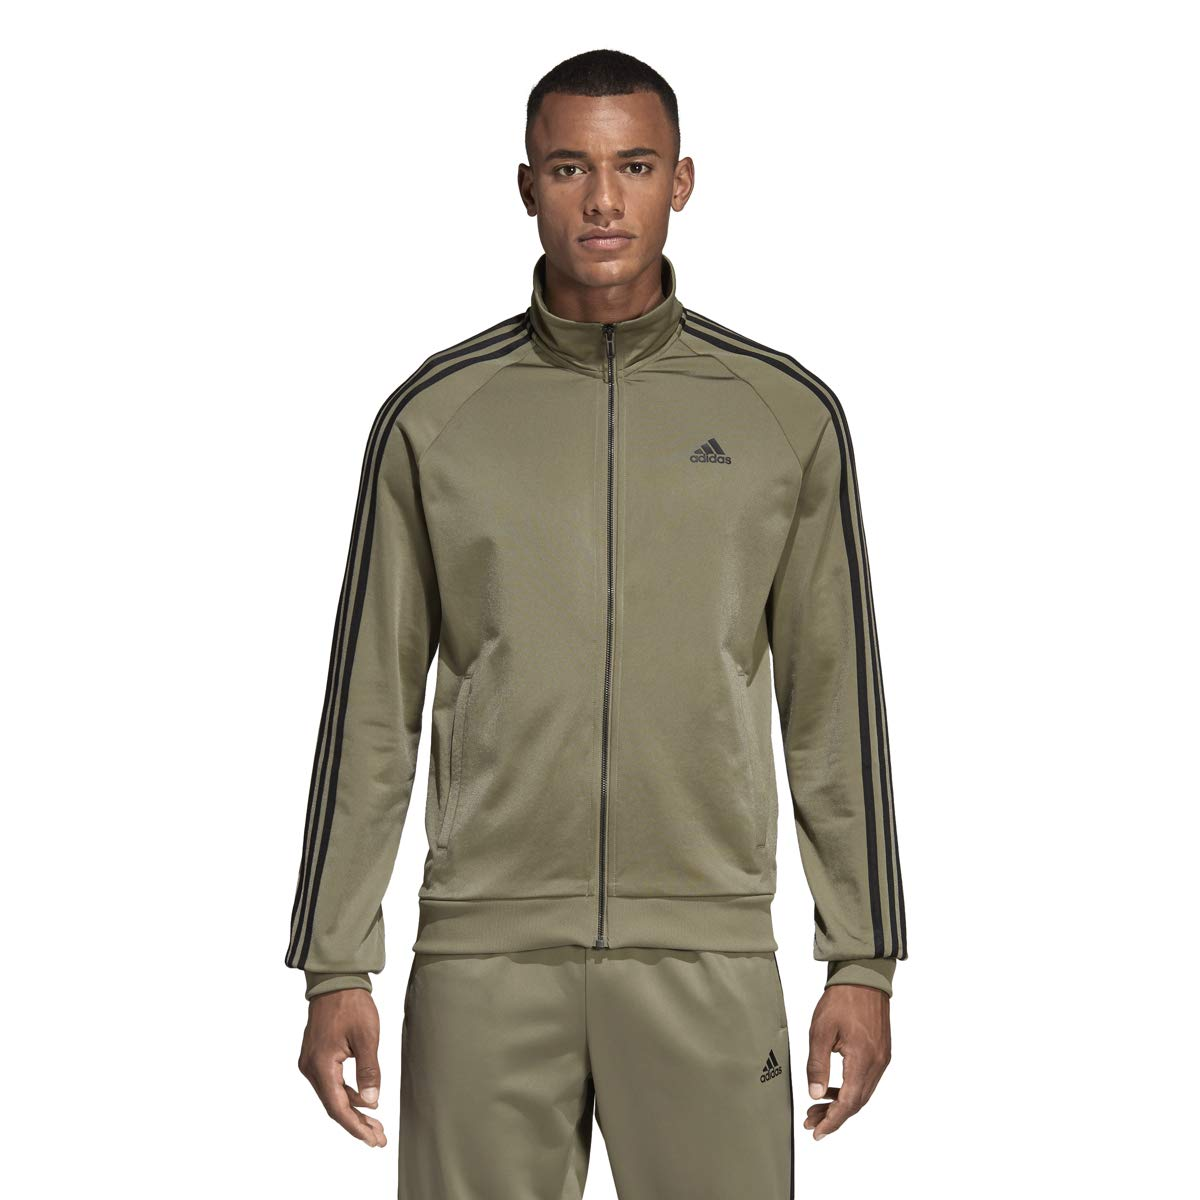 adidas Essentials 3S Tricot Track Jacket Men's All Sports M Trace Cargo by adidas (Image #3)